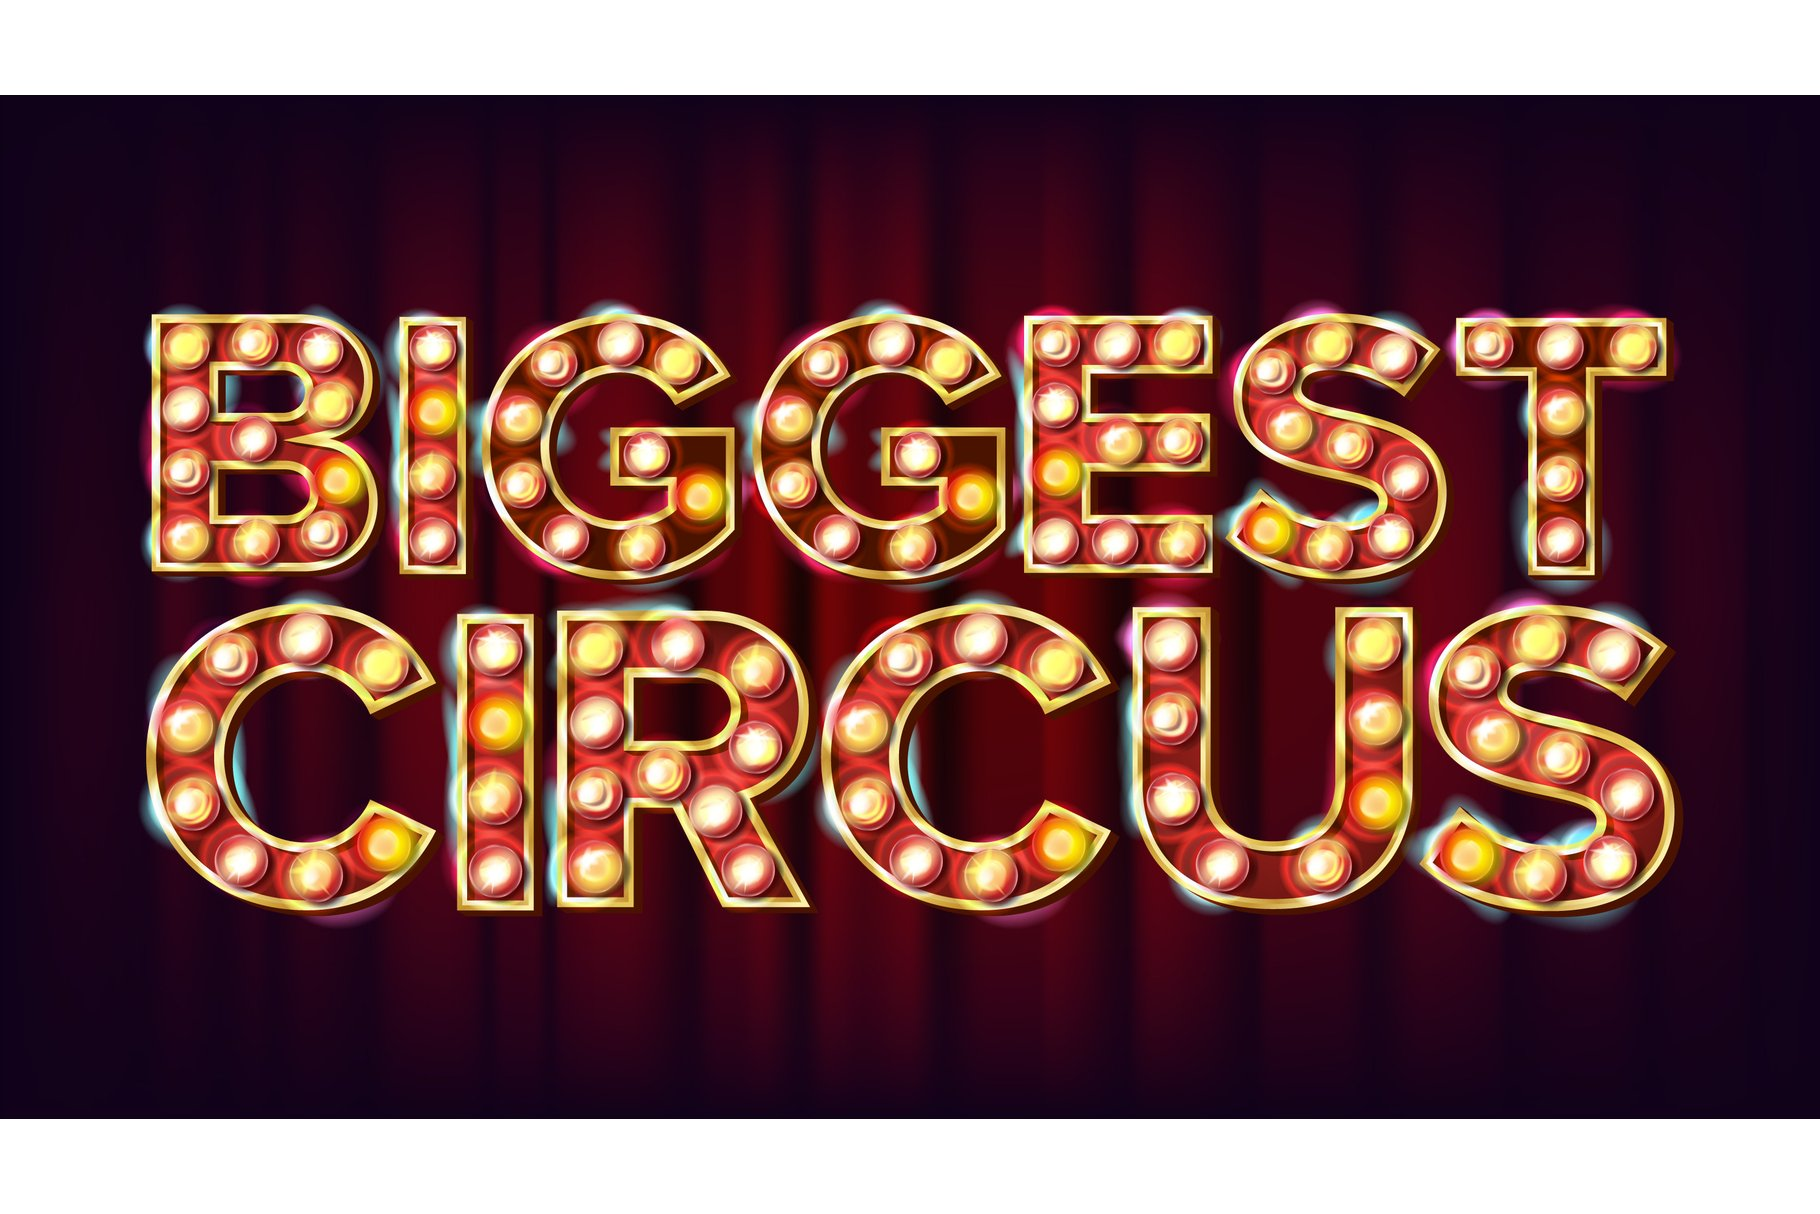 Biggest Circus Banner Sign Vector. For Arts Festival Events example image 1